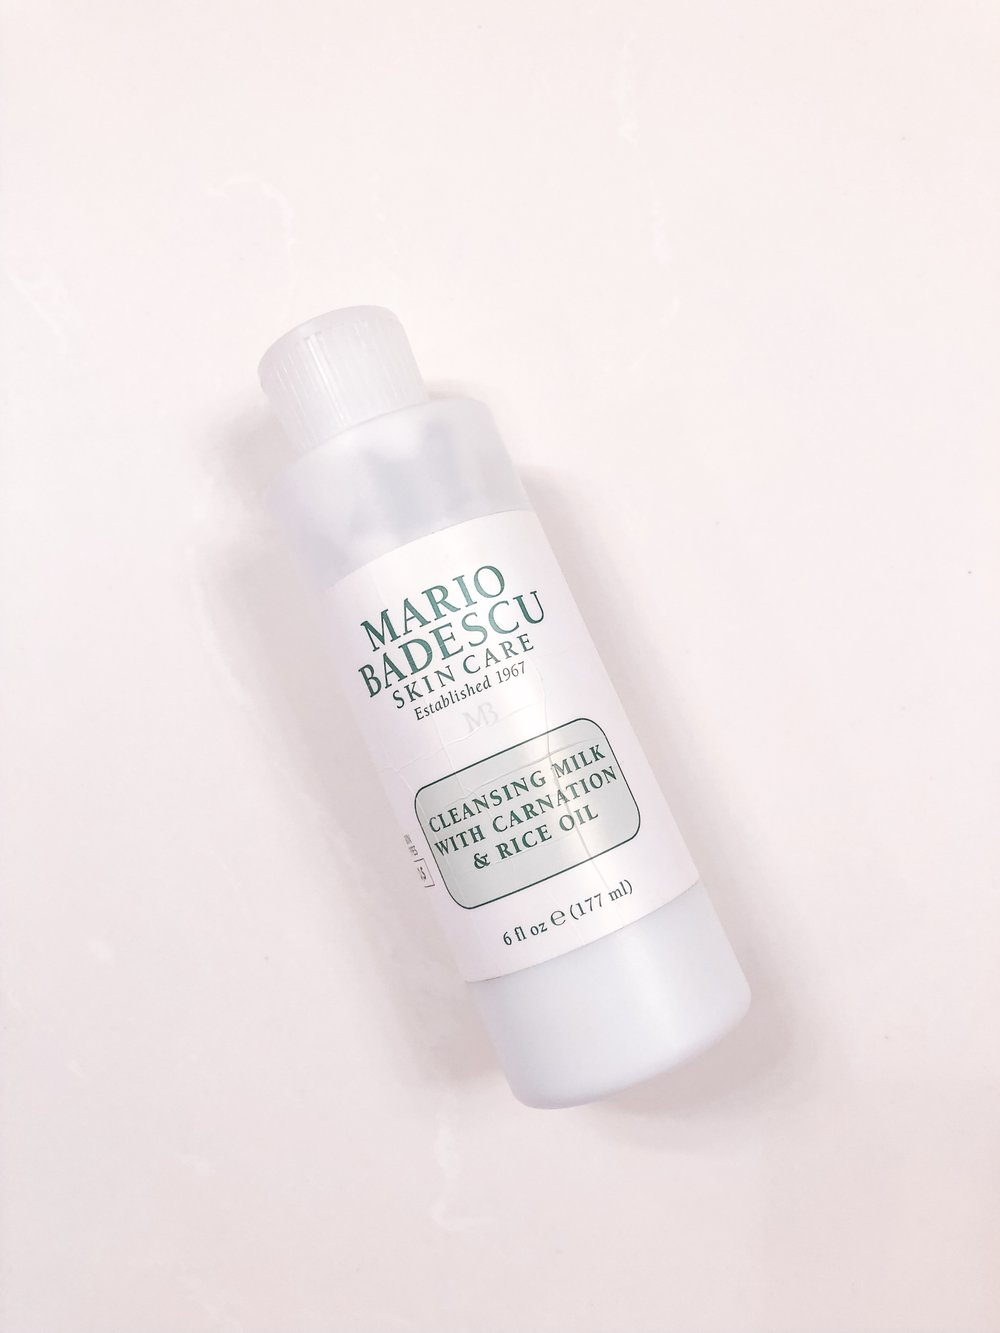 Mario Badescu Cleansing Milk with Carnation + Rice Oil | hello vashti